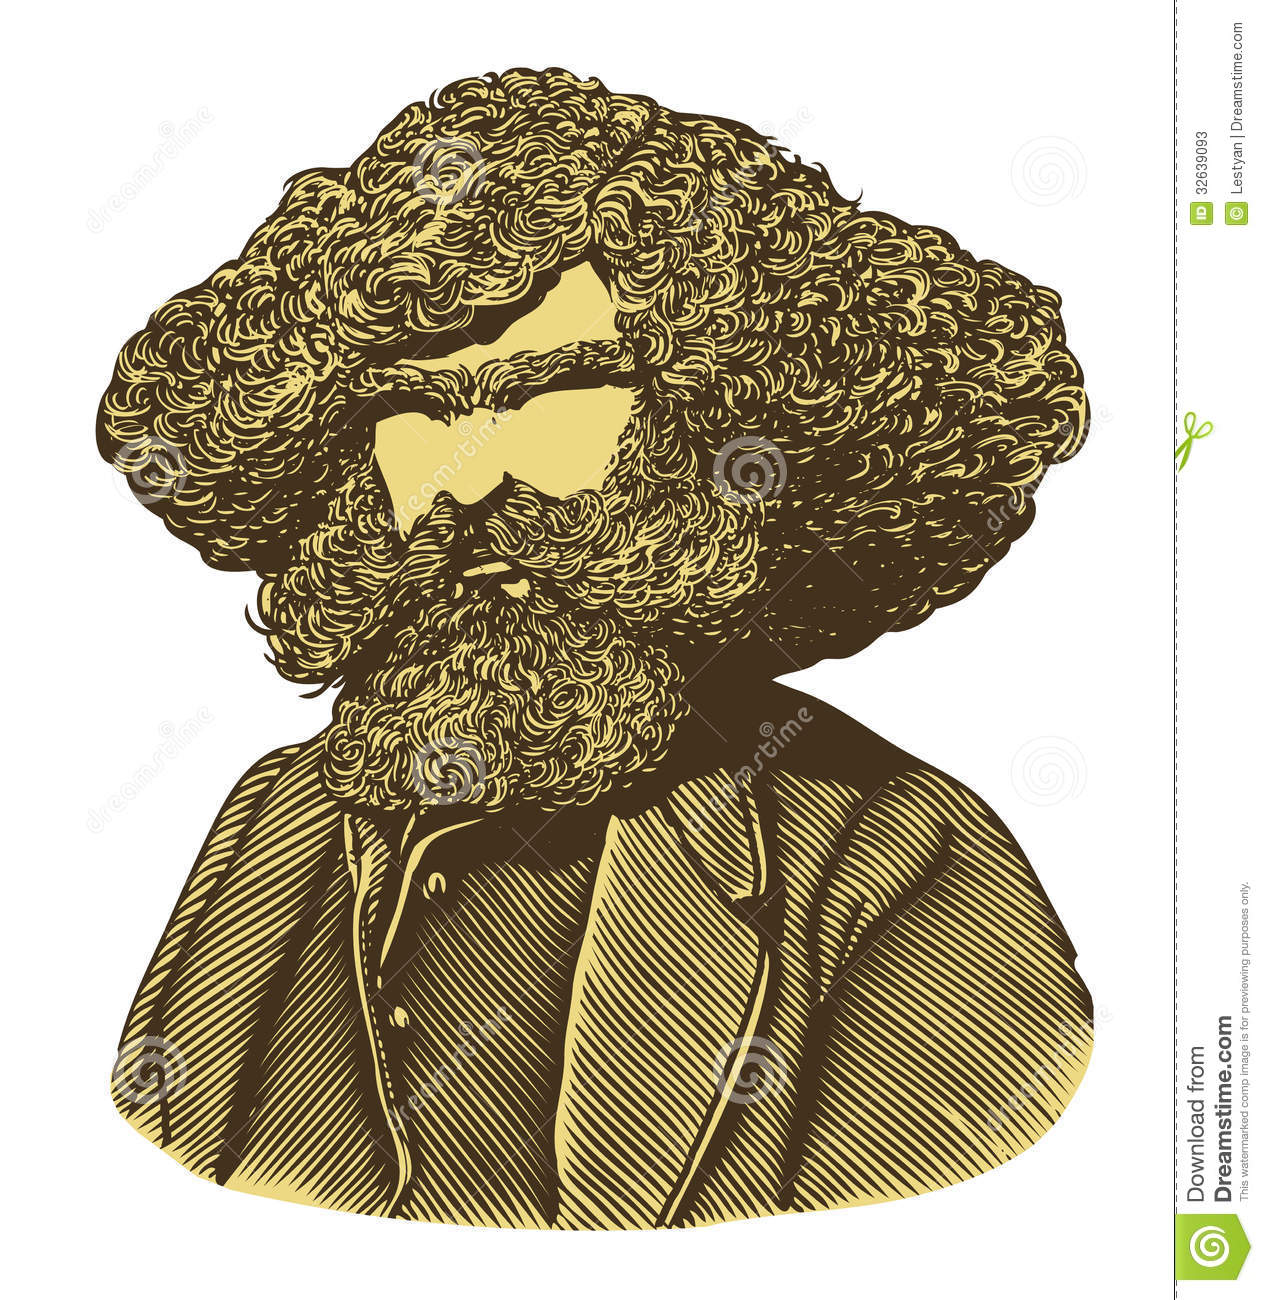 Classic Retro Illustration: Bearded Man With Long Hair In Vintage Engraved Style Stock